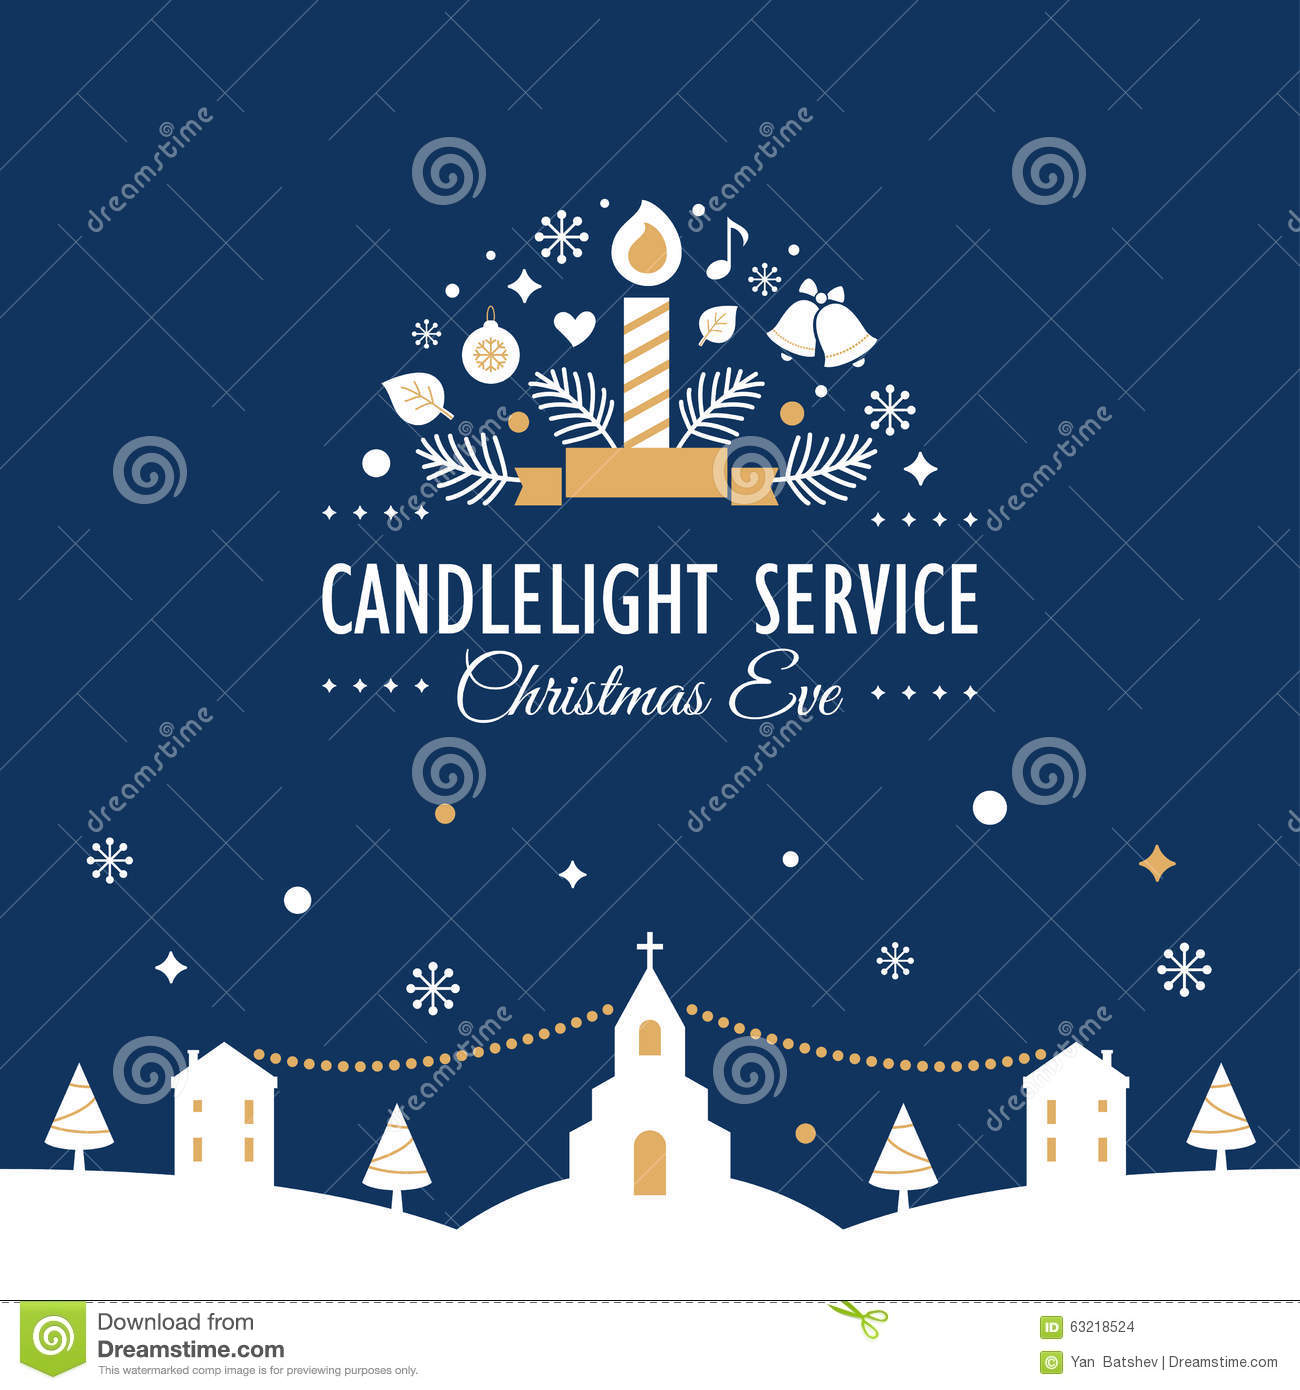 Christmas Eve Candlelight Service Invitation Card Stock Illustration